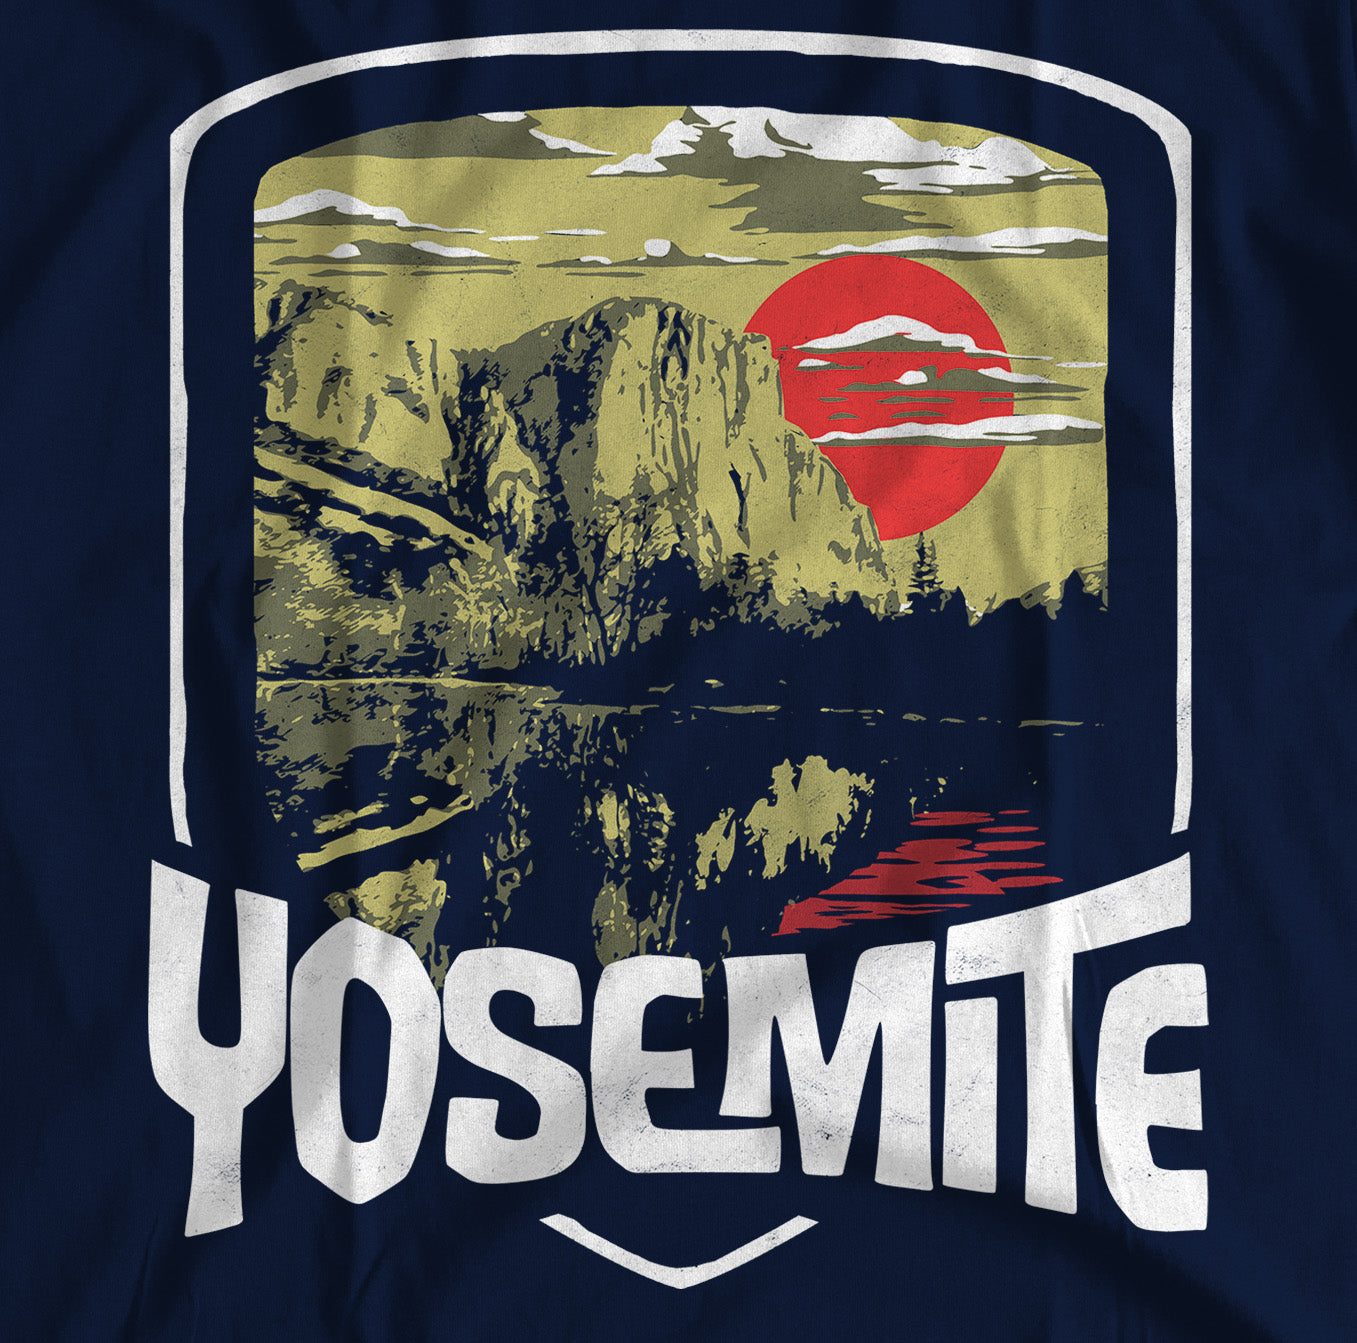 Yosemite National Park El Capitan Short-Sleeve Unisex T-Shirt - Navy